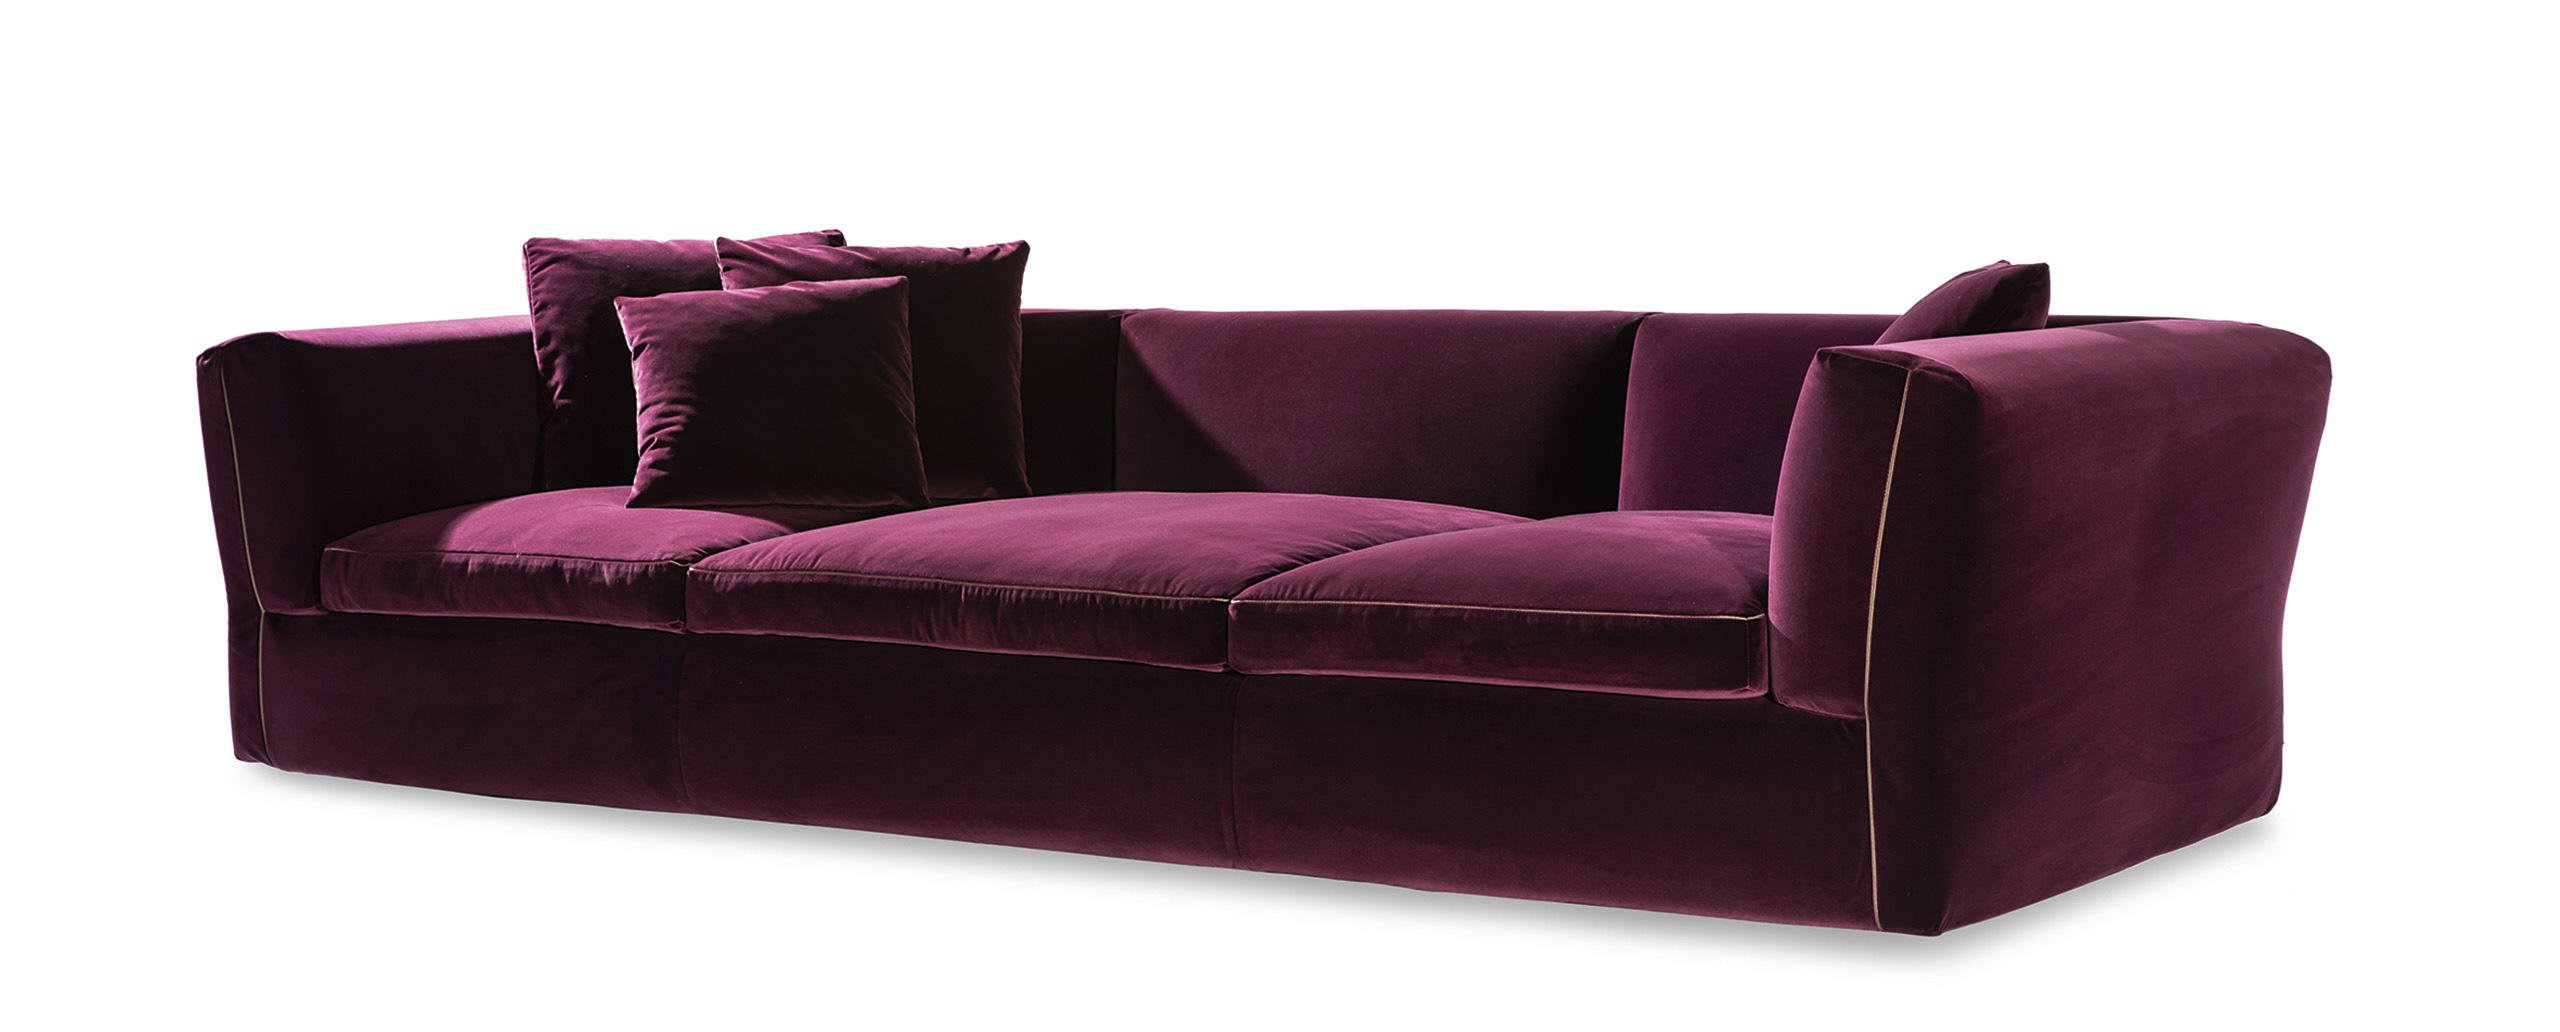 3_cassina_dress-up_sofa_system_rodolfo_dordoni